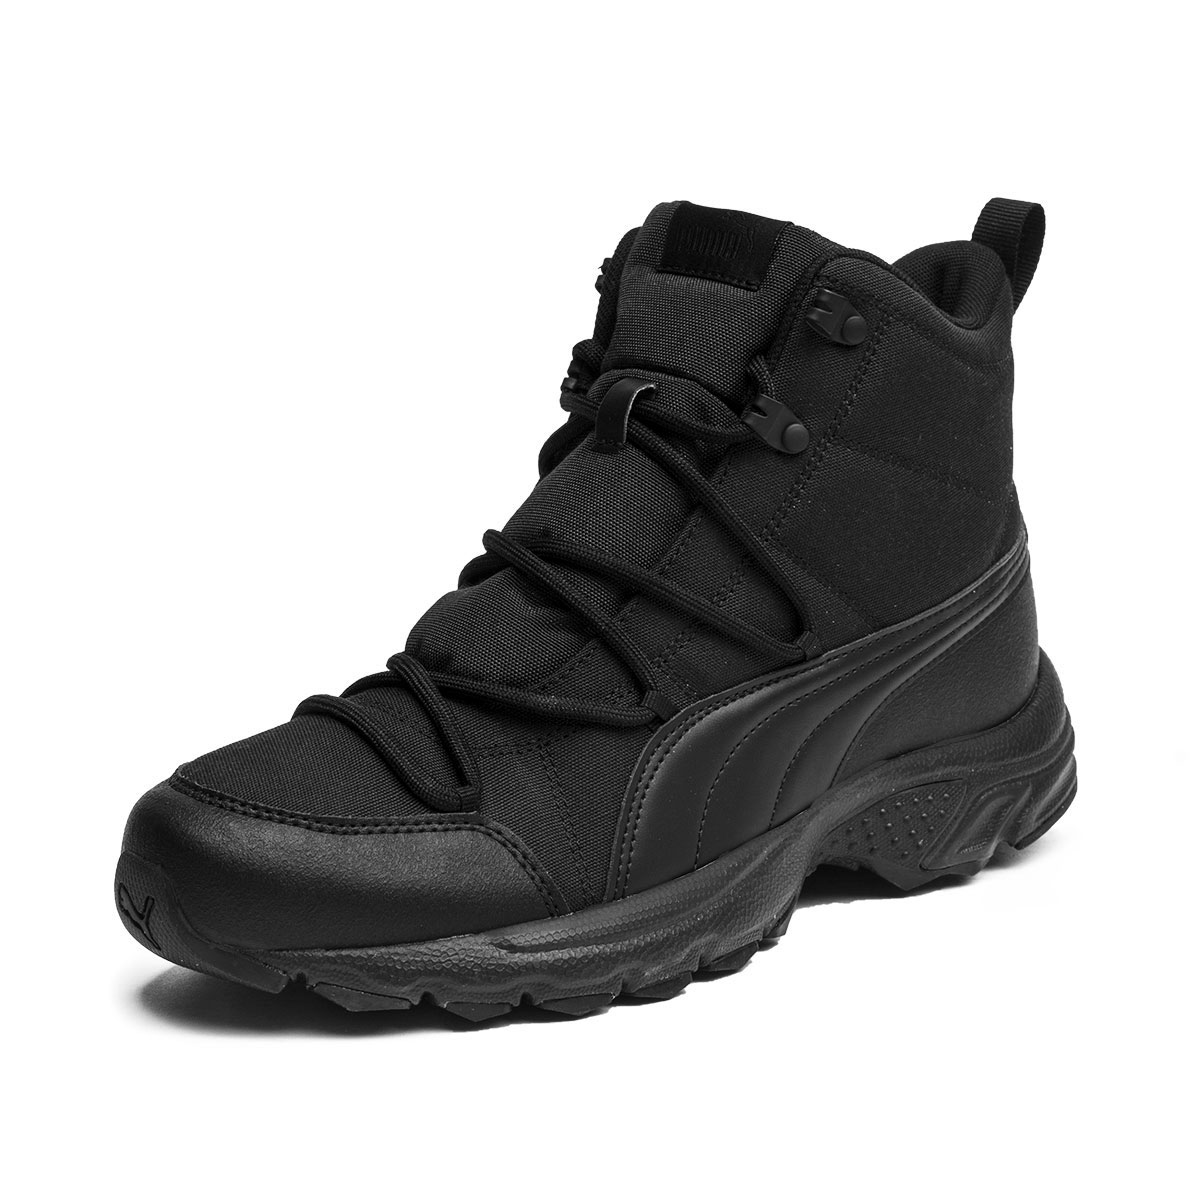 Зимни боти Puma Axis TR Boot Winter